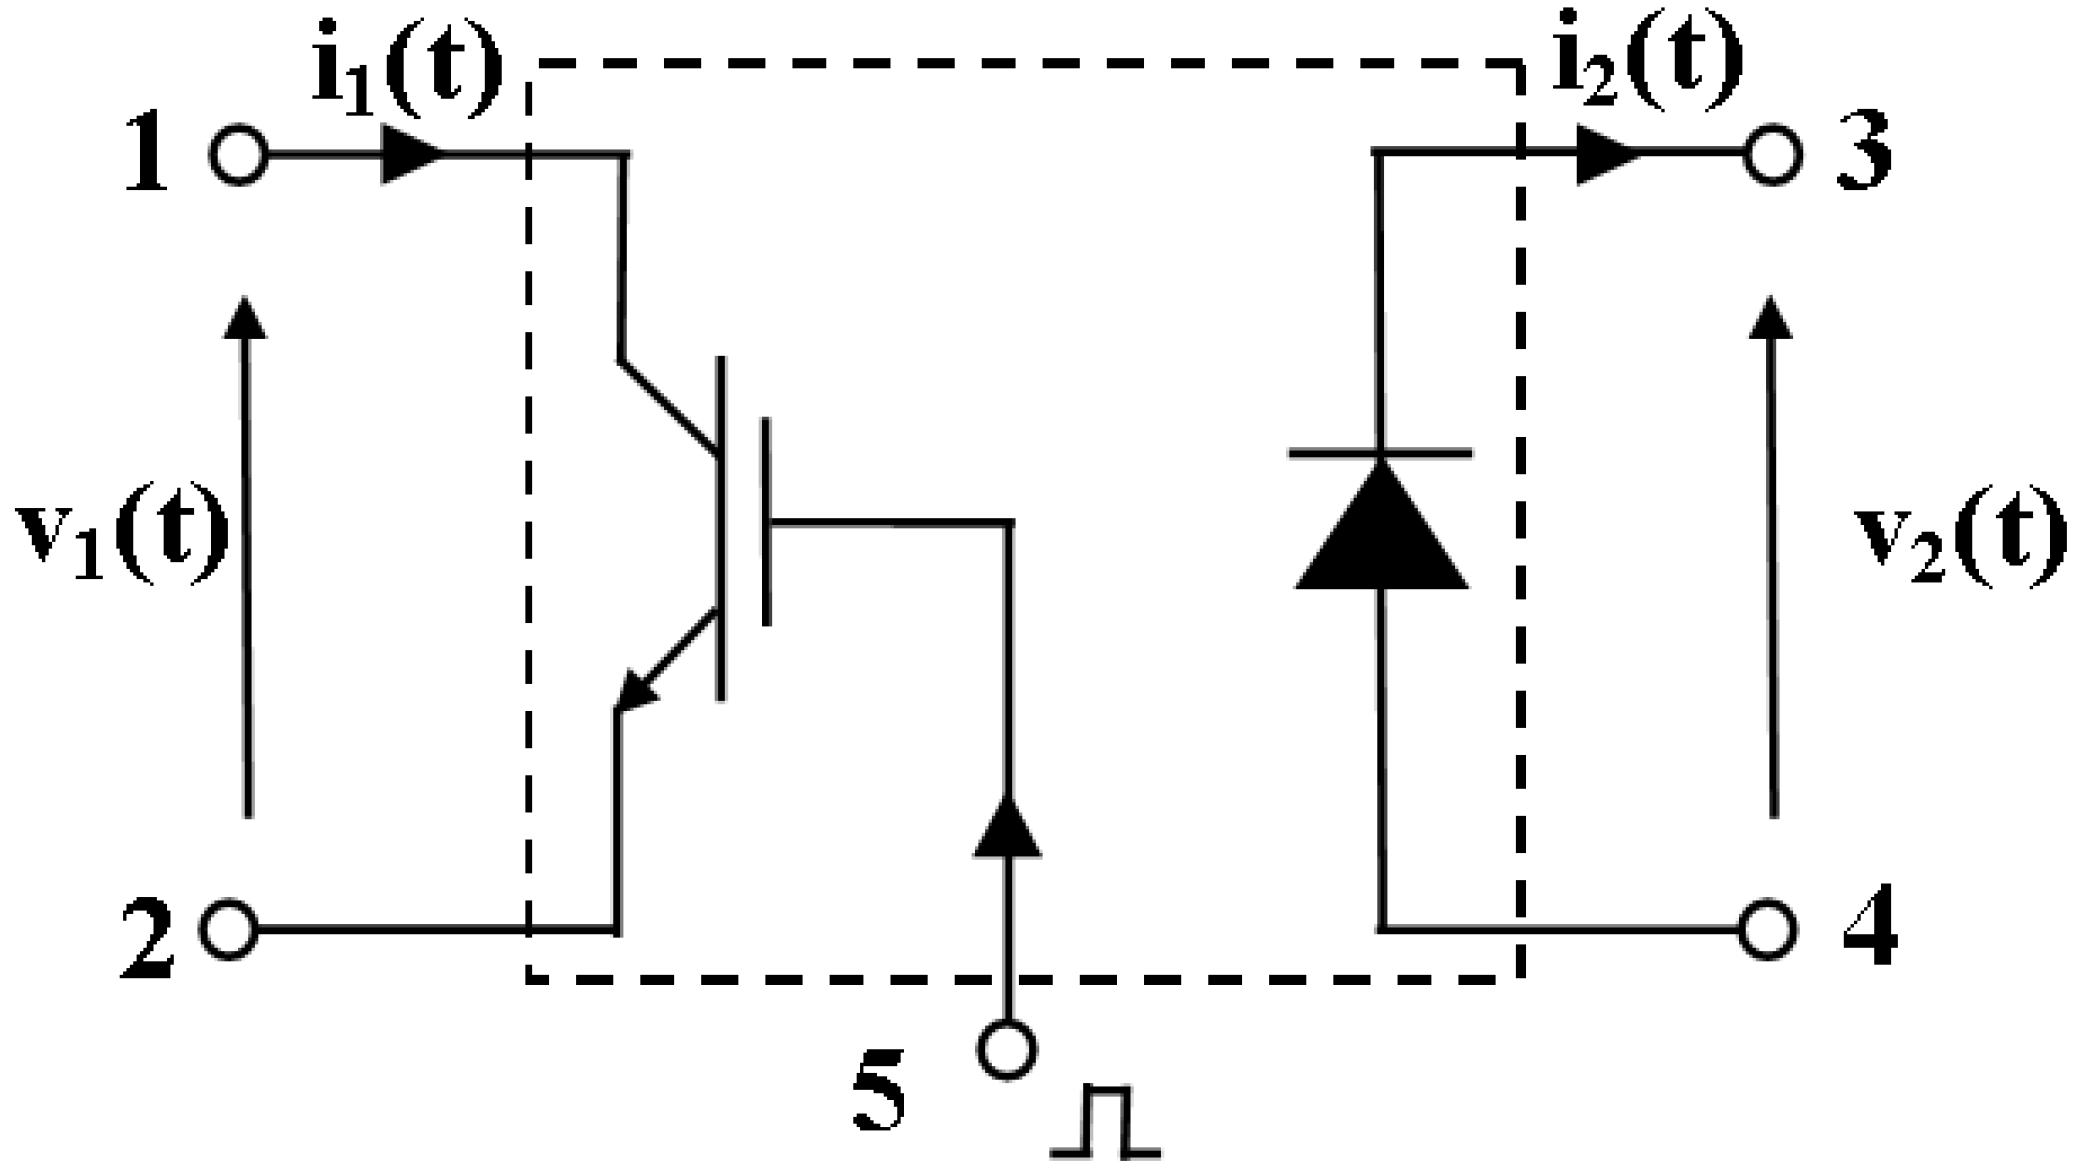 Energies Free Full Text Electrothermal Averaged Model Of A Diode Transistor Switch Including Igbt And A Rapid Switching Diode